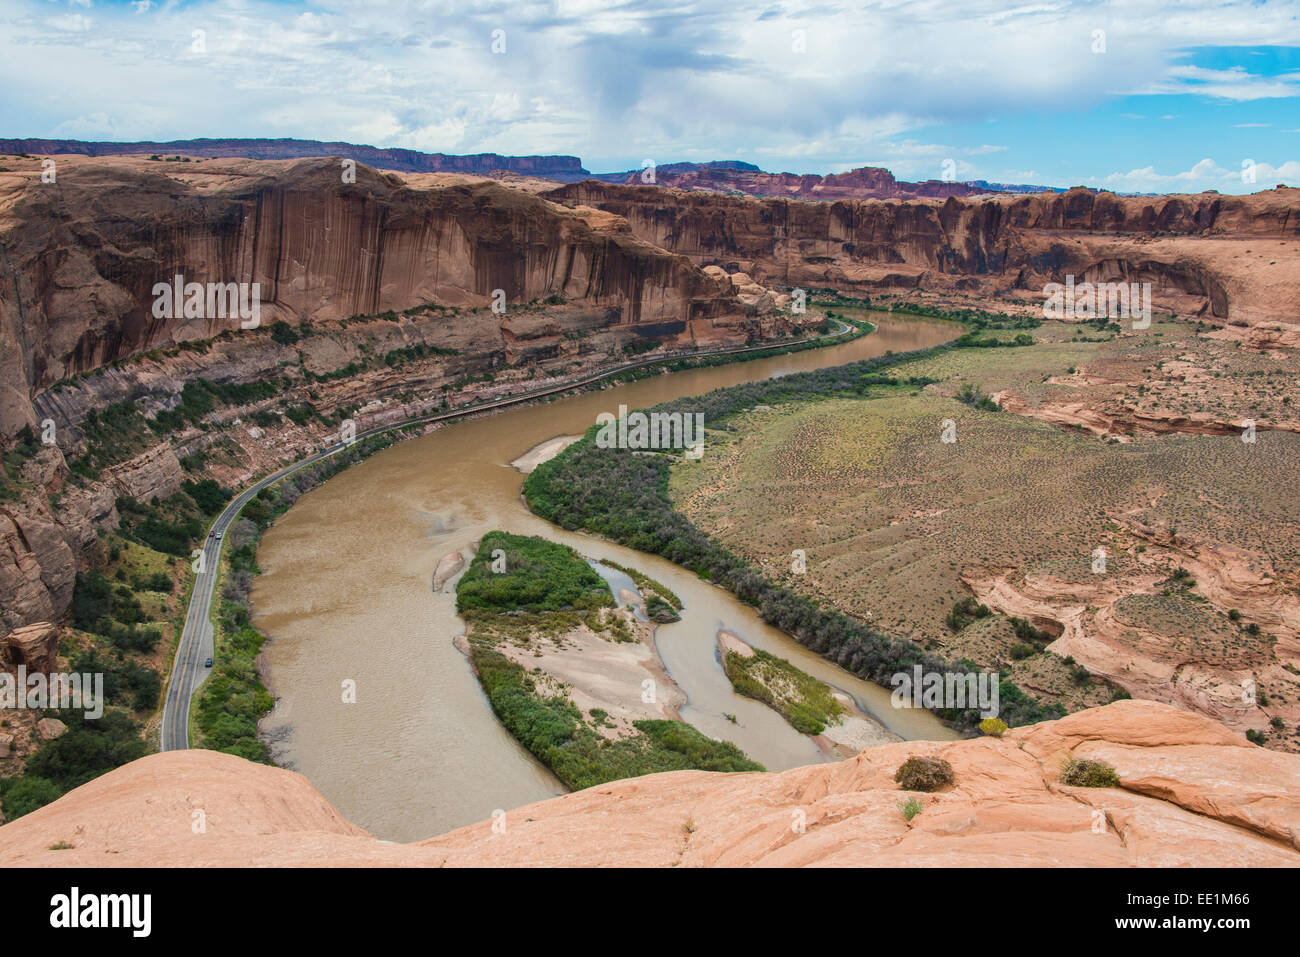 View over the Colorado River from the Slickrock trail, Moab, Utah, United States of America, North America - Stock Image